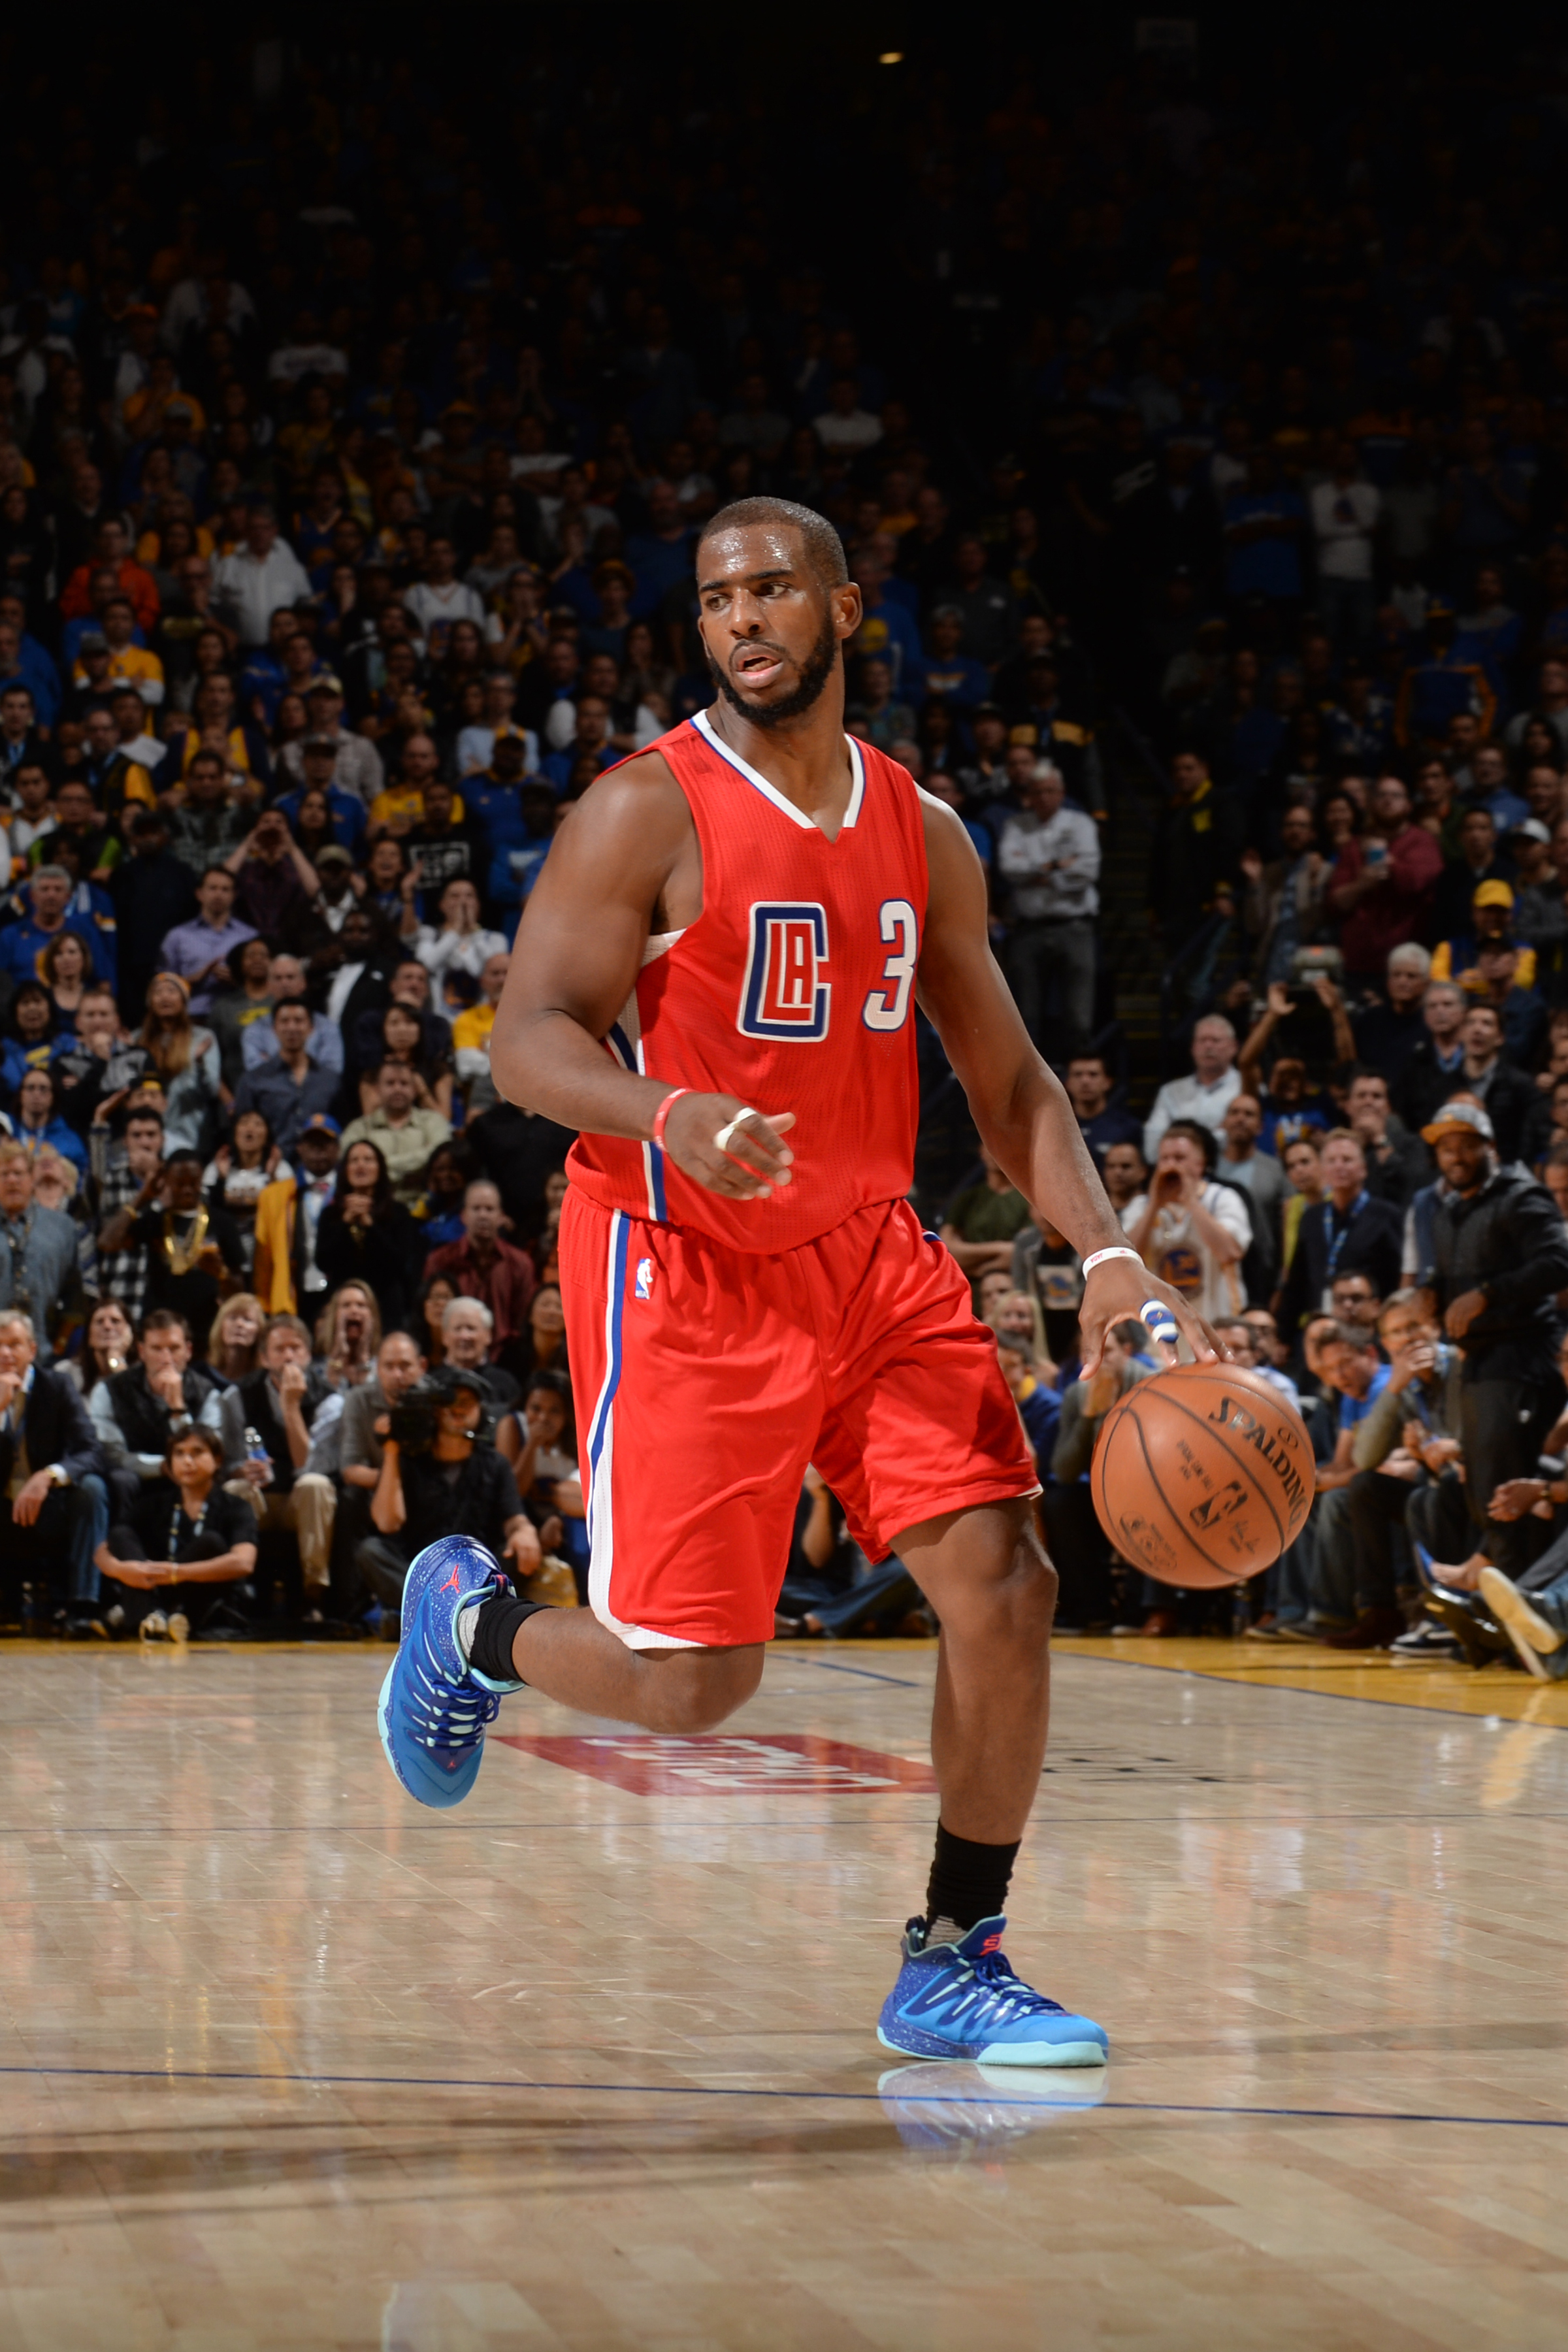 OAKLAND, CA - NOVEMBER 4:  Chris Paul #3 of the Los Angeles Clippers handles the ball against the Golden State Warriors on November 4, 2015 at ORACLE Arena in Oakland, California. (Photo by Noah Graham/NBAE via Getty Images)